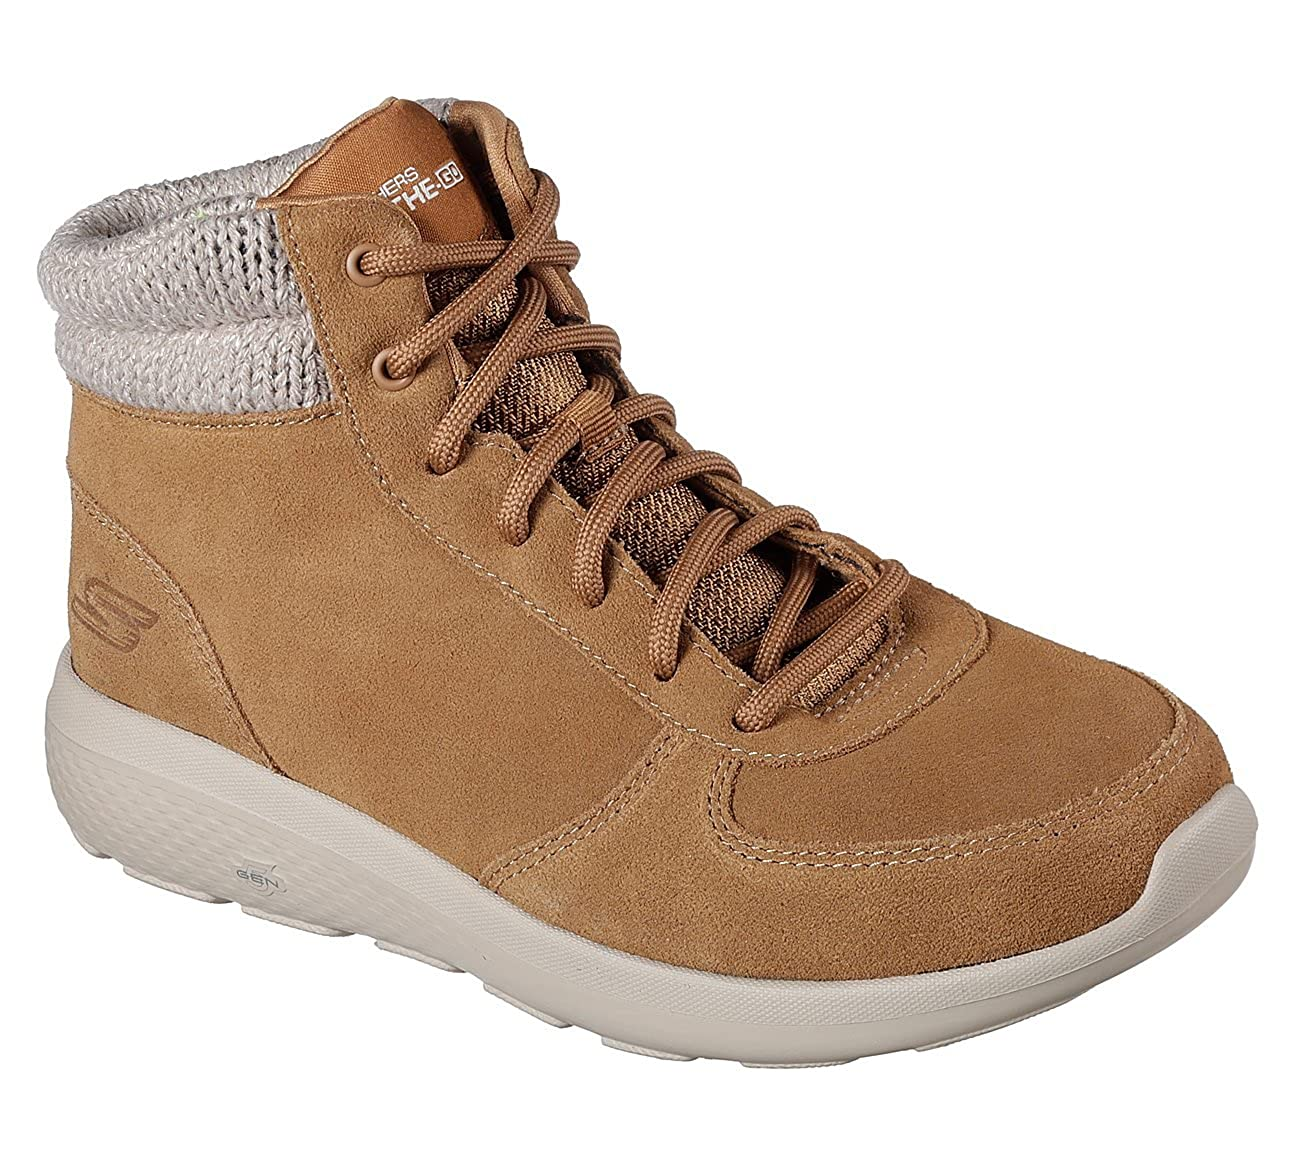 Skechers Ice North Ice Skechers Damen Kastanienbraun e1892a